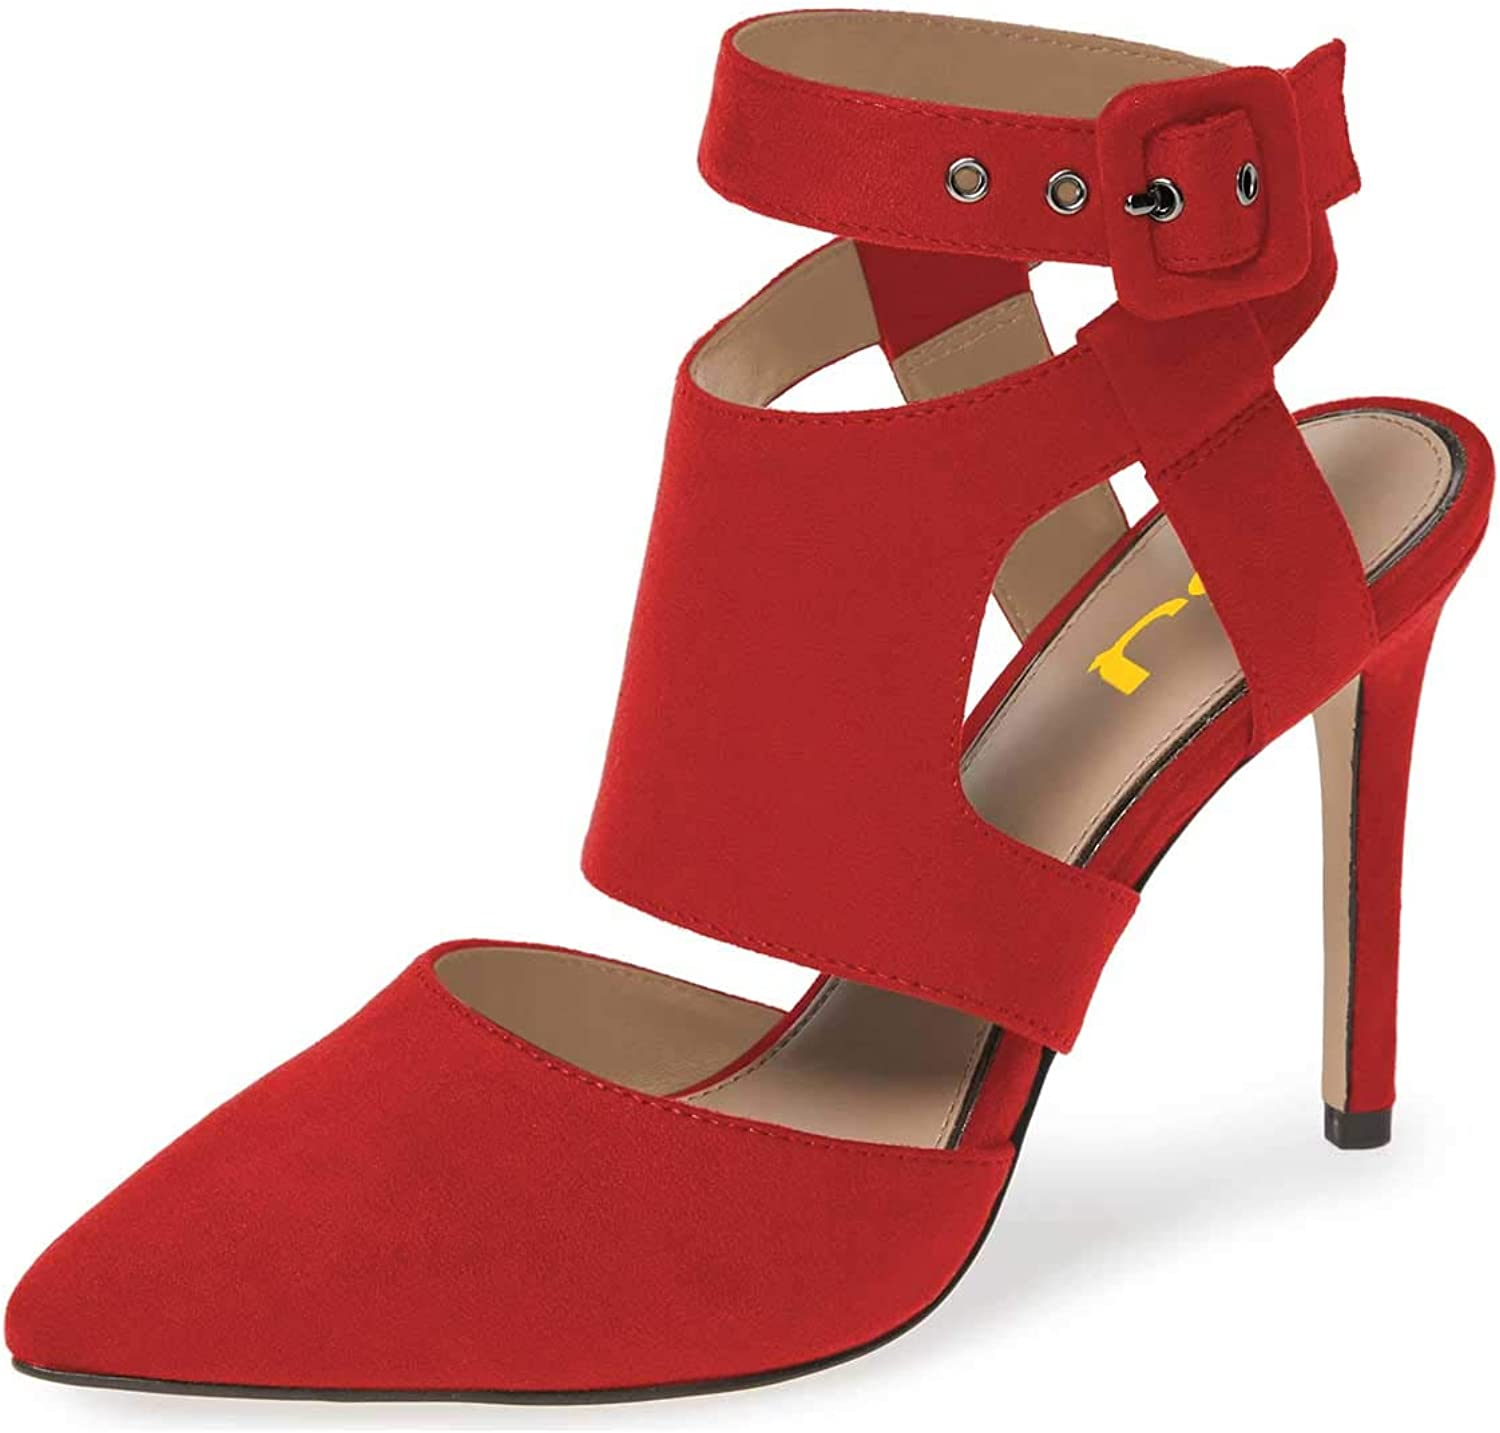 FSJ Women Strappy Buckled Strap Slingback Pumps High Heels Sexy Sandals Pointy Toe shoes Size 4-15 US